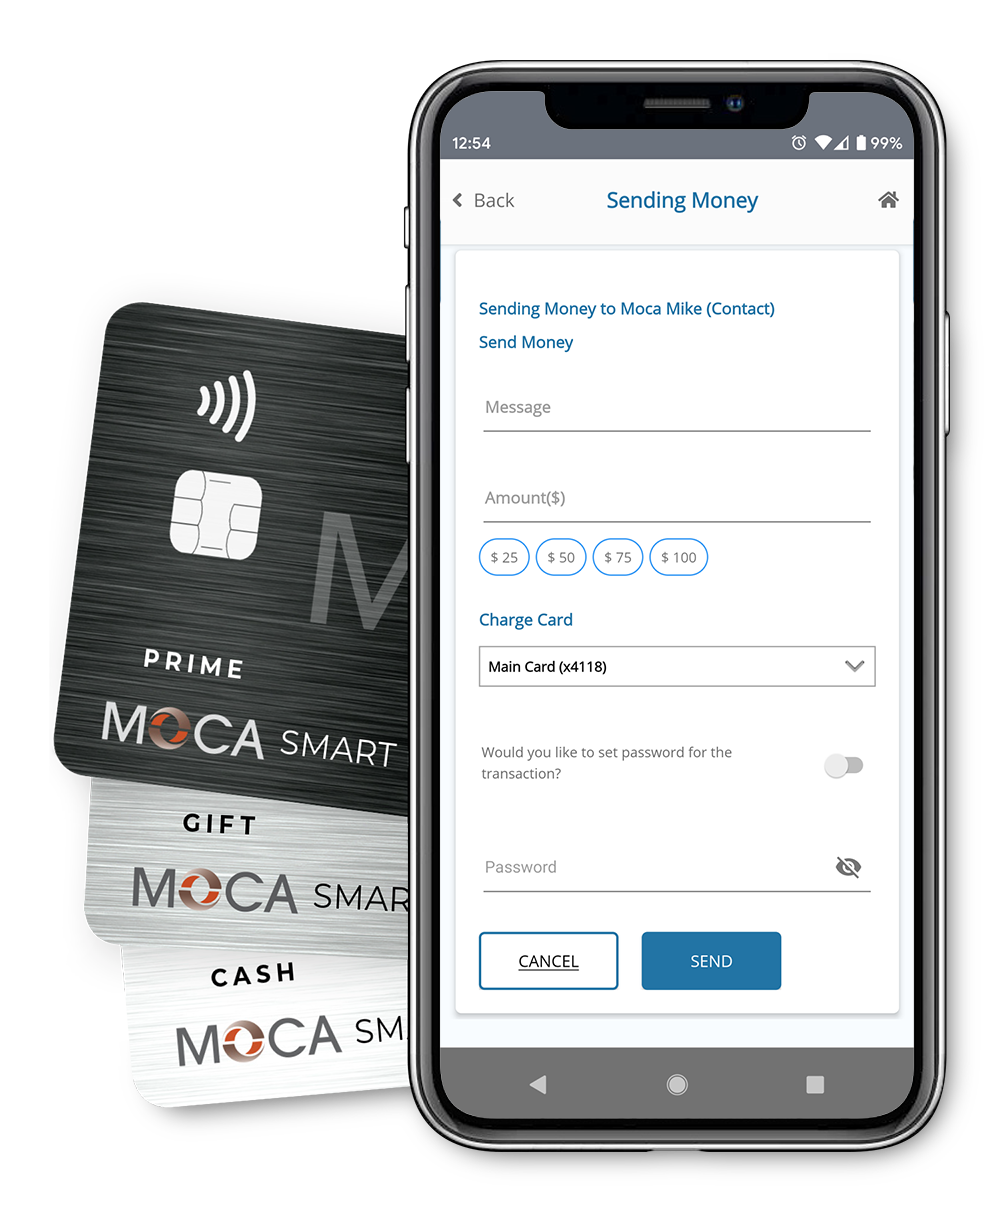 MOCA Smart Card, MOCA Money and MOCA App